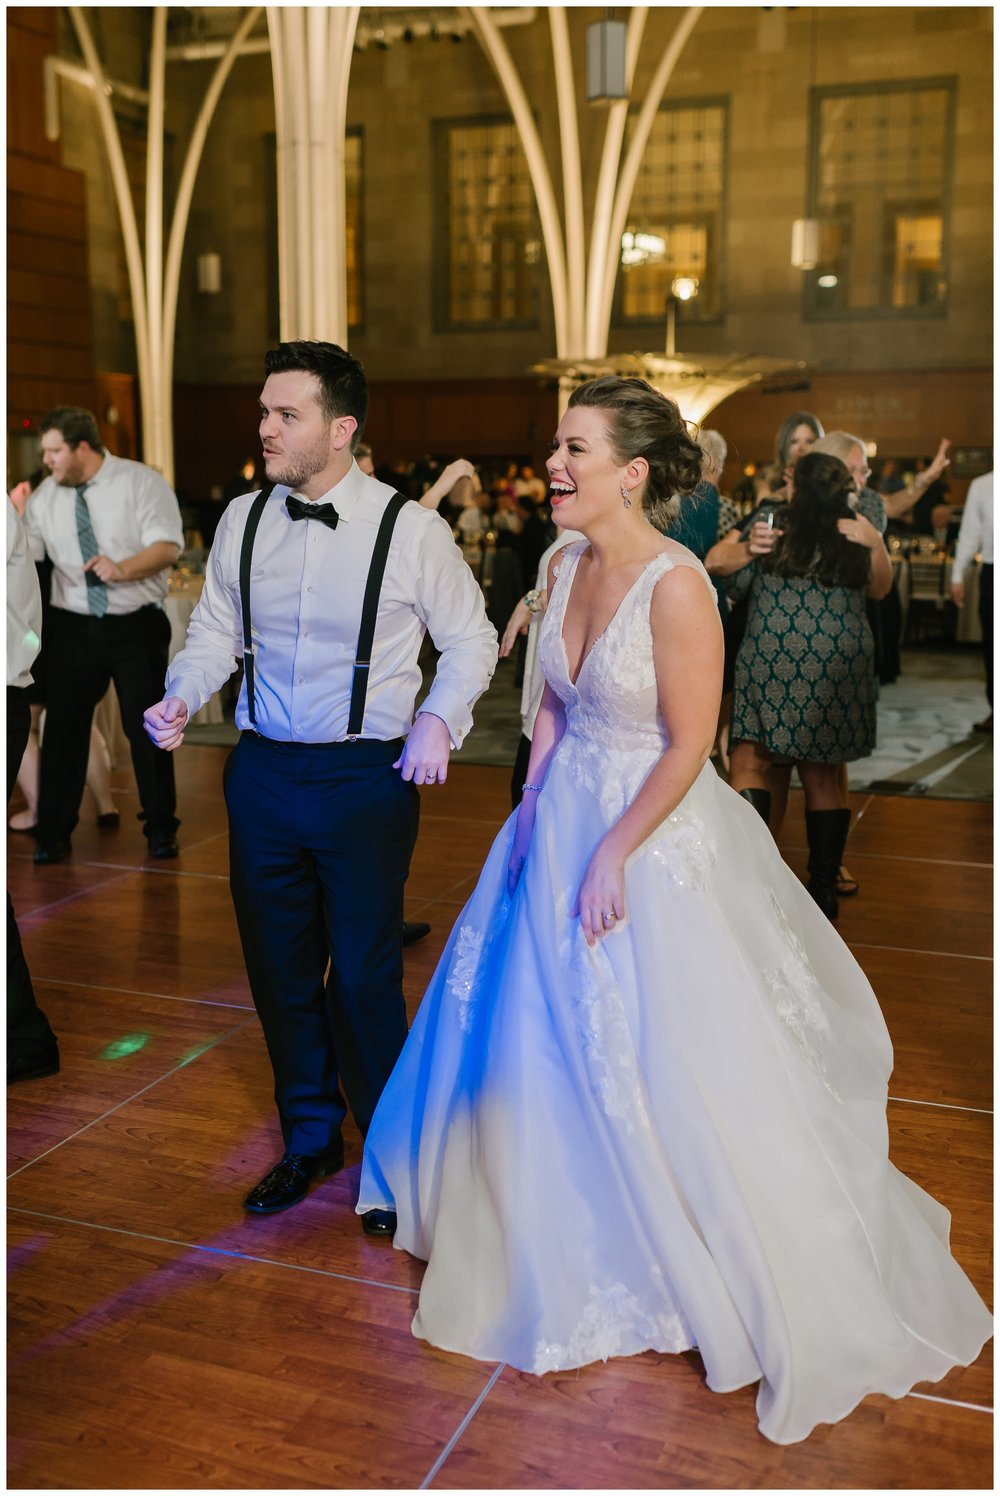 Rebecca_Shehorn_Photography_Indianapolis_Wedding_Photographer_7804.jpg